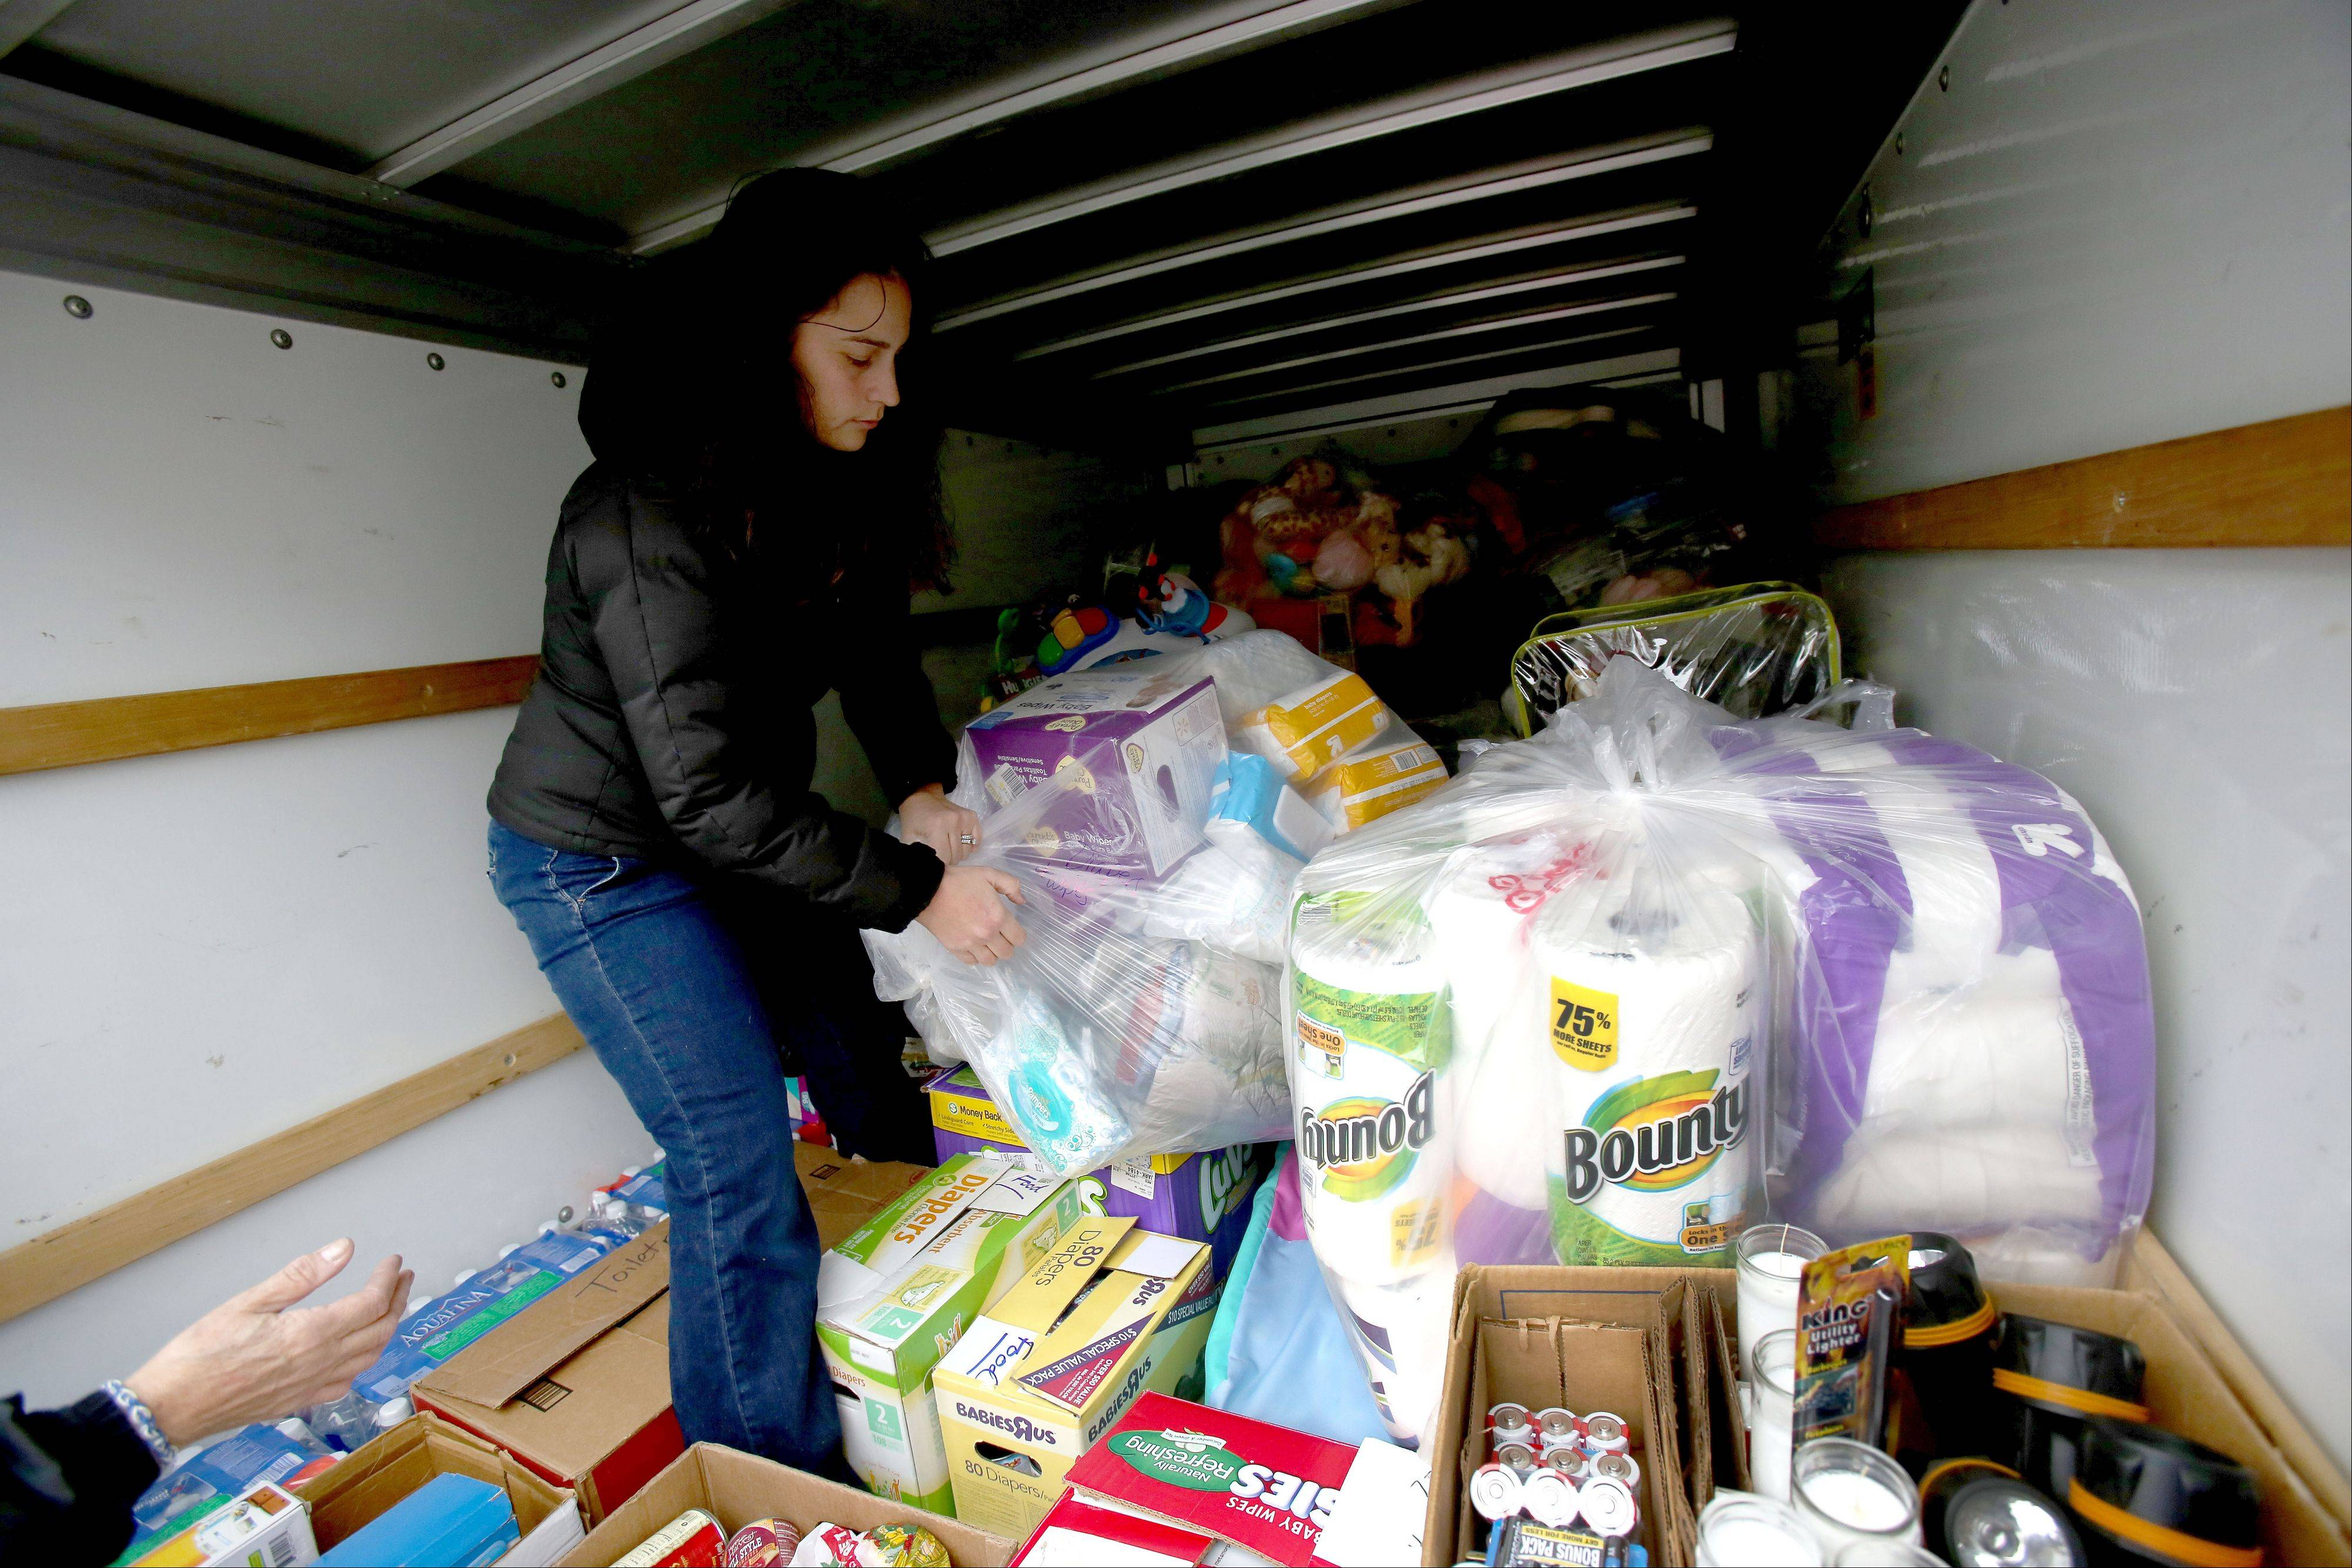 Bev Horne/bhorne@dailyherald.com Jennifer Guevara loads up a U-Haul on Thursday in Wheaton of donated items to take to the victims of the tornado in Coal City. She gathered donations after she posted on Wheaton, Illinois Parents Facebook page.